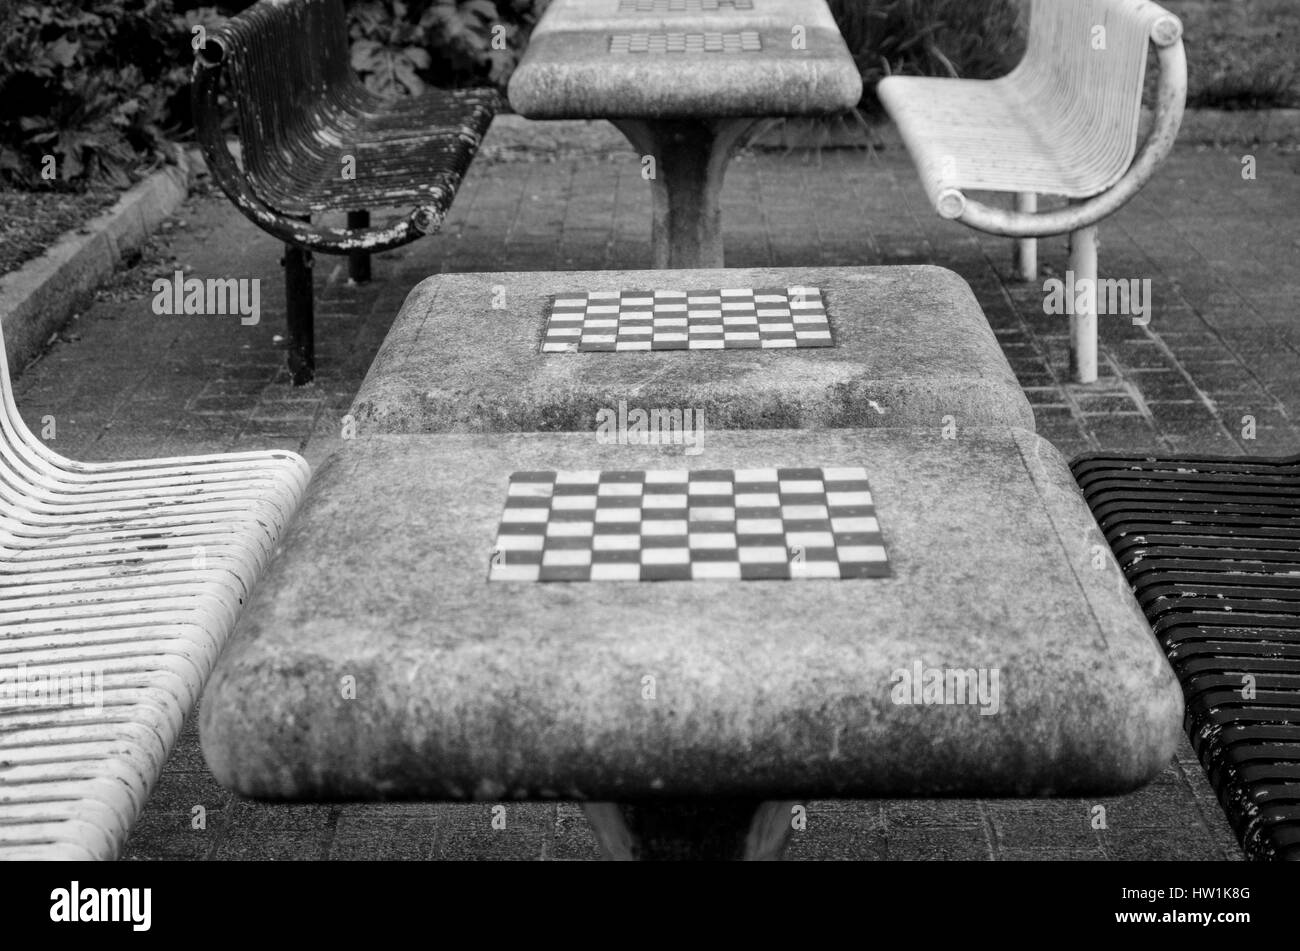 Outdoor chess boards plymouth - Stock Image